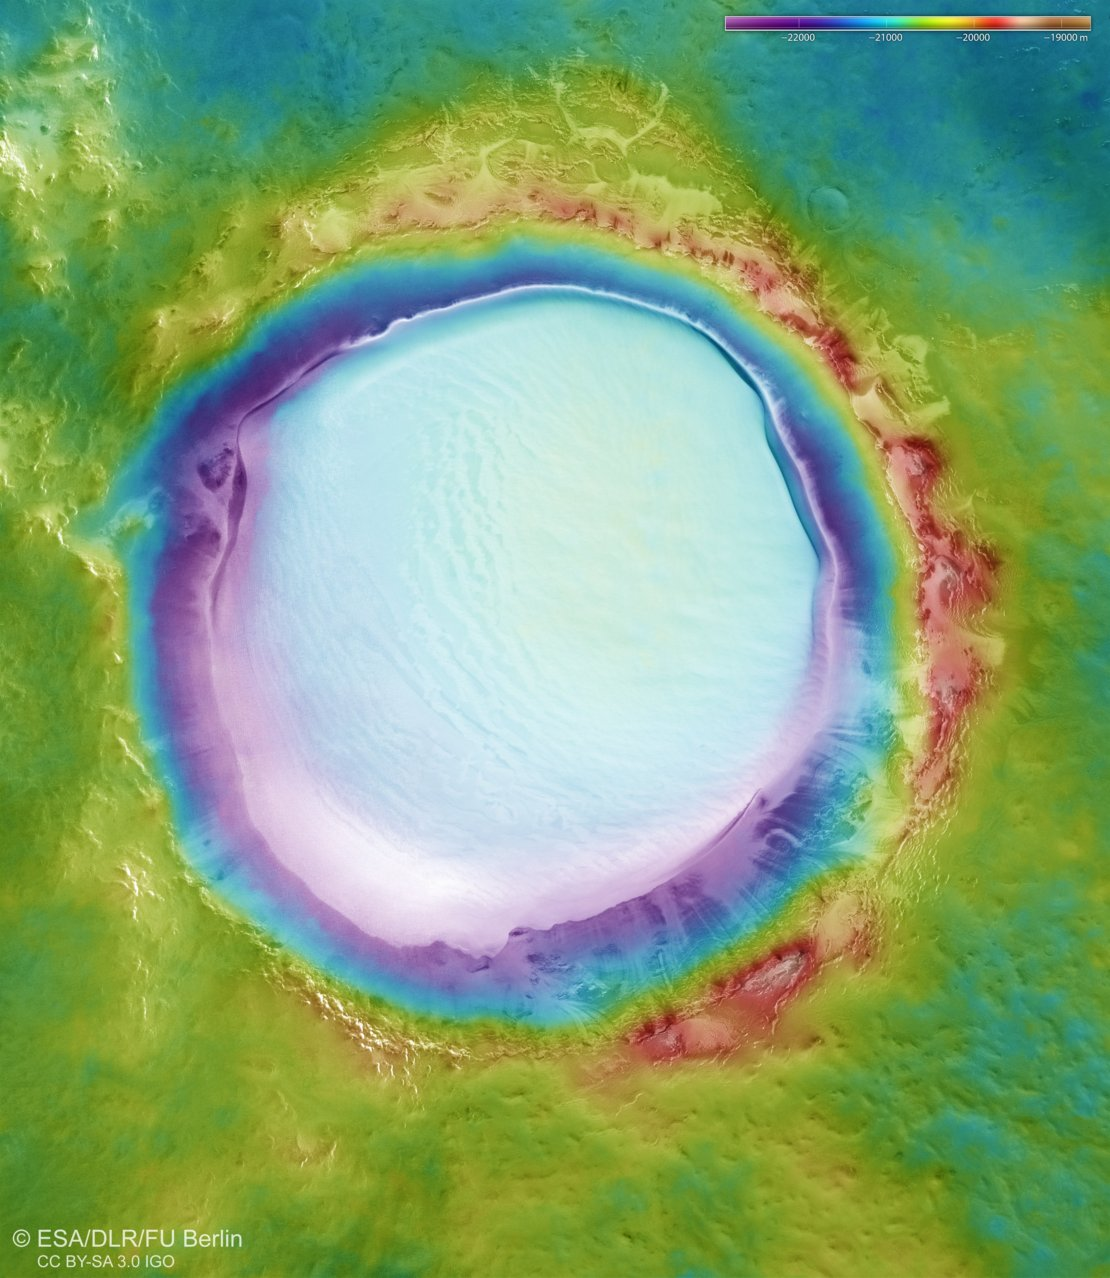 Topography of Korolev crater